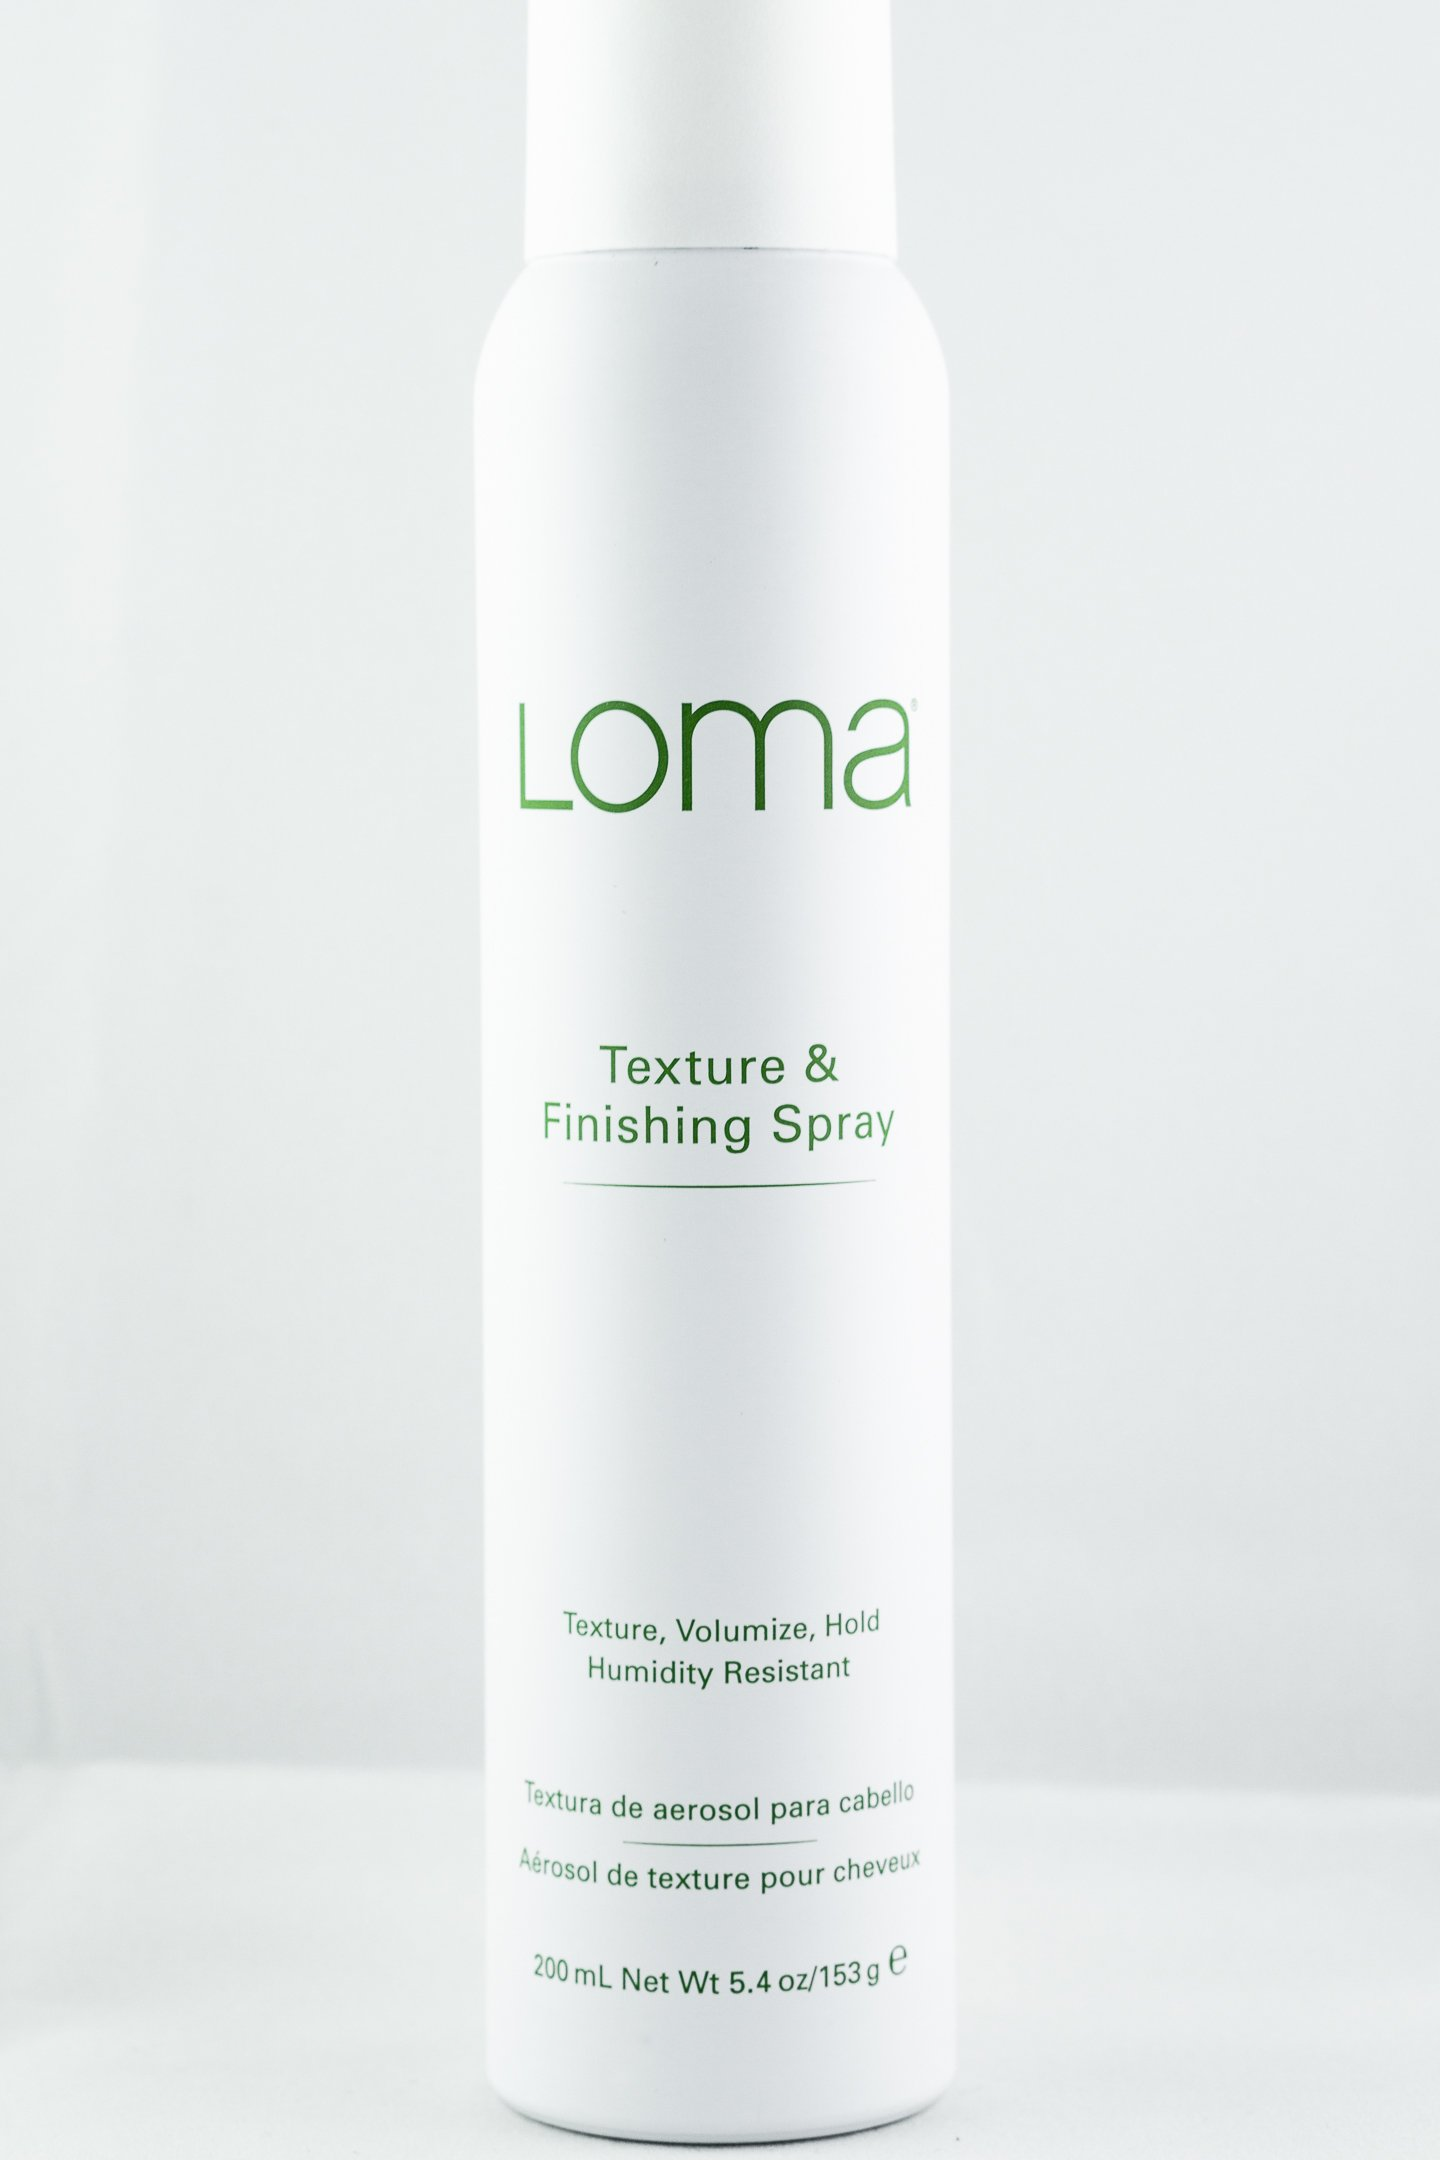 Loma Texture & Finishing Spray | Studio Trio Hair Salon